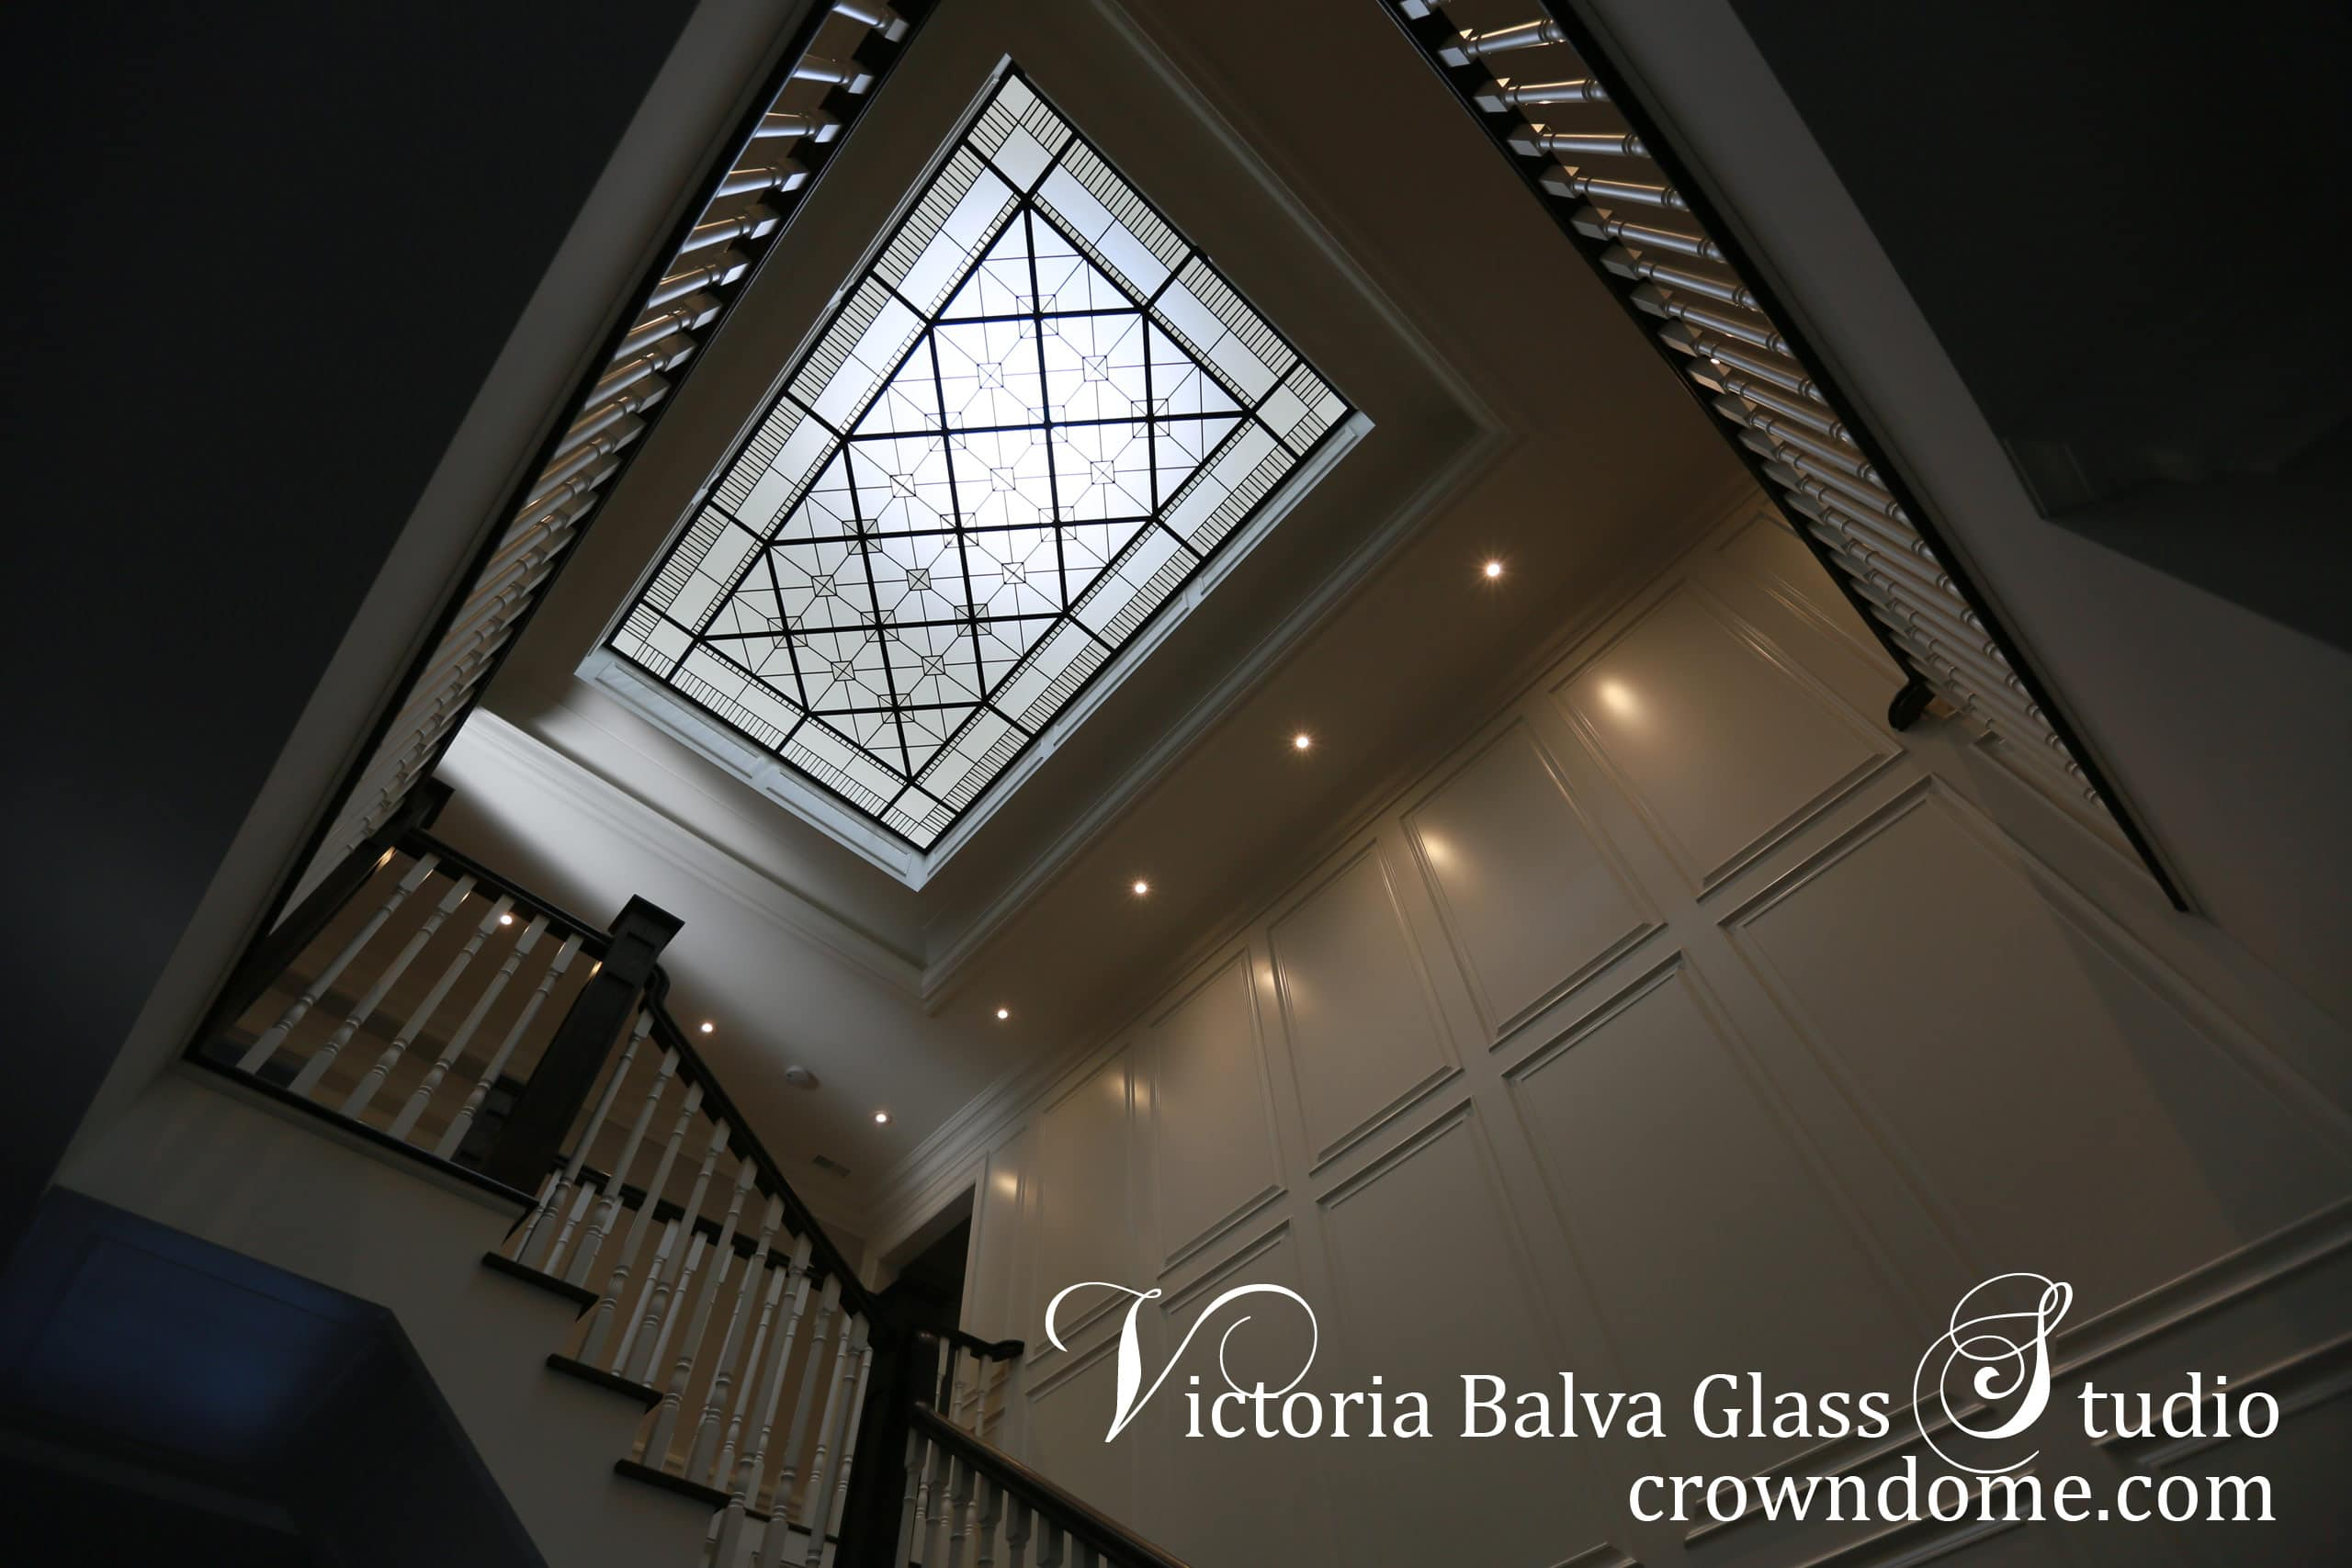 Leaded glass skylight ceiling with clear beveled glass Cricket Club for a custom built house in traditional style. Clear textured glass, beveled glass, intricate line-work geometry